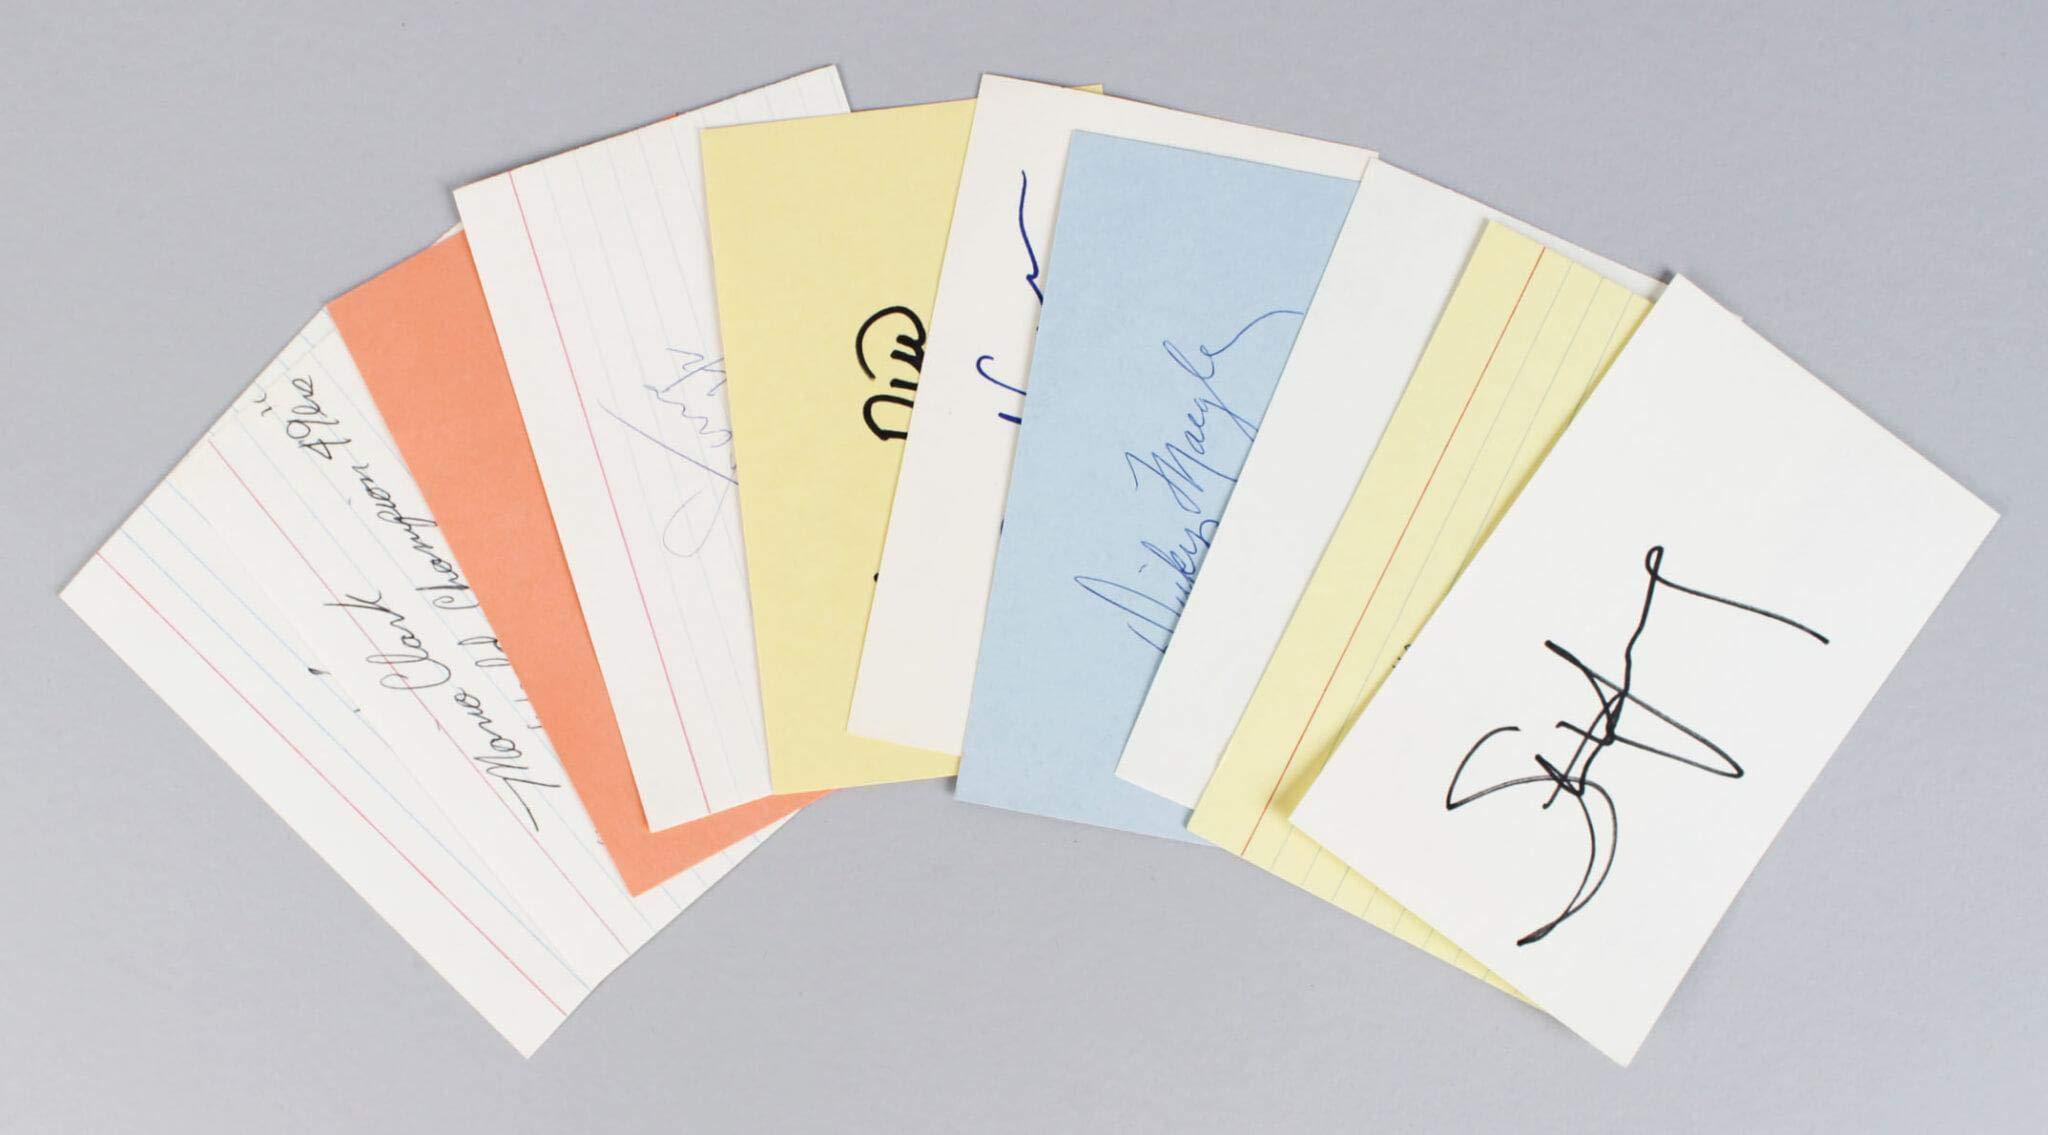 49ers Signed Index Cards Lot (9) Ronnie Lott, Steve Young etc. COA JSA Certified NFL Cut Signatures